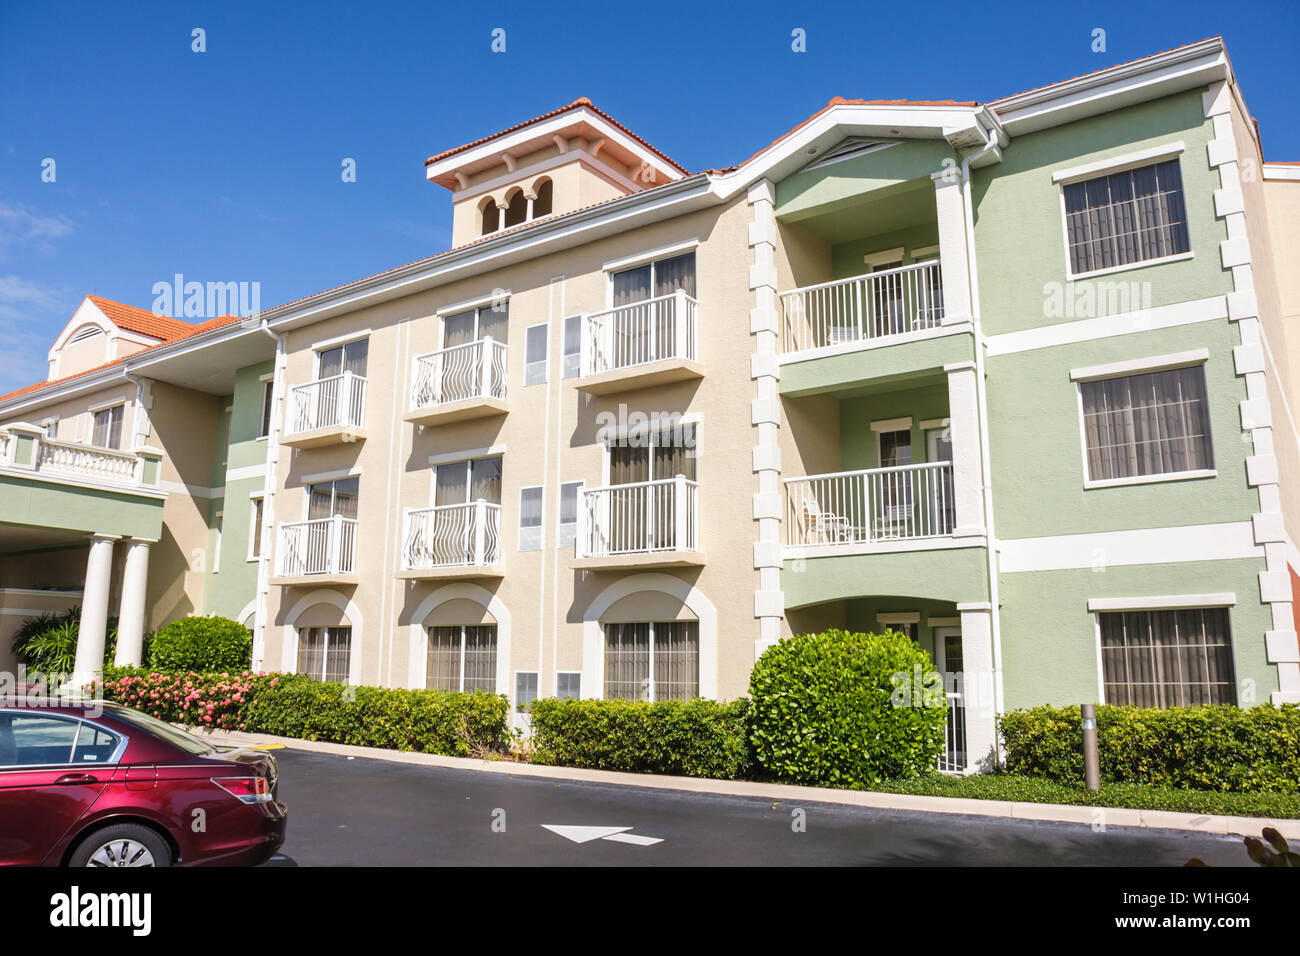 Naples Florida Hilton DoubleTree Guest Suites chain business hotel motel lodging three-story building exterior balcony - Stock Image